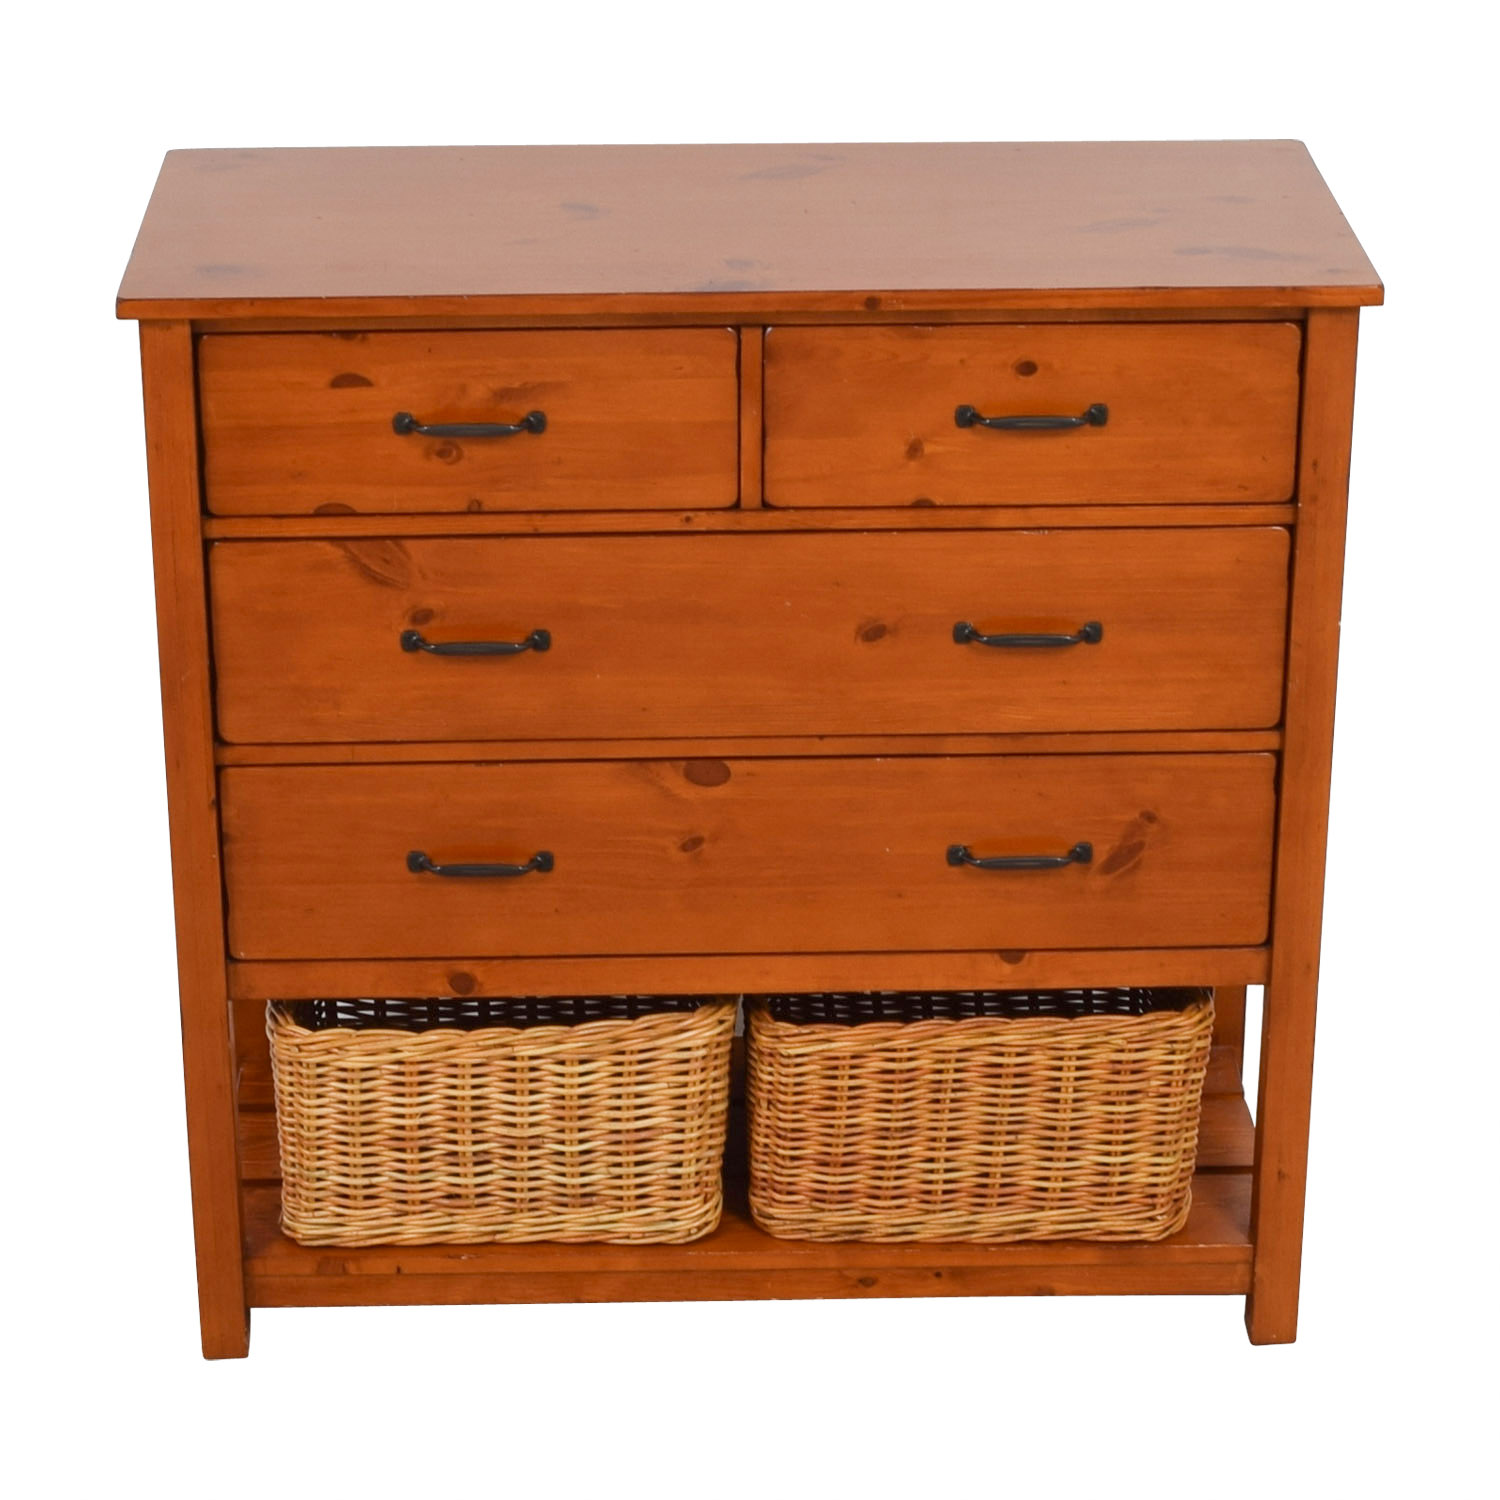 Pottery Barn Kids Camp Four-Drawer Dresser with Wicker Baskets / Sofas